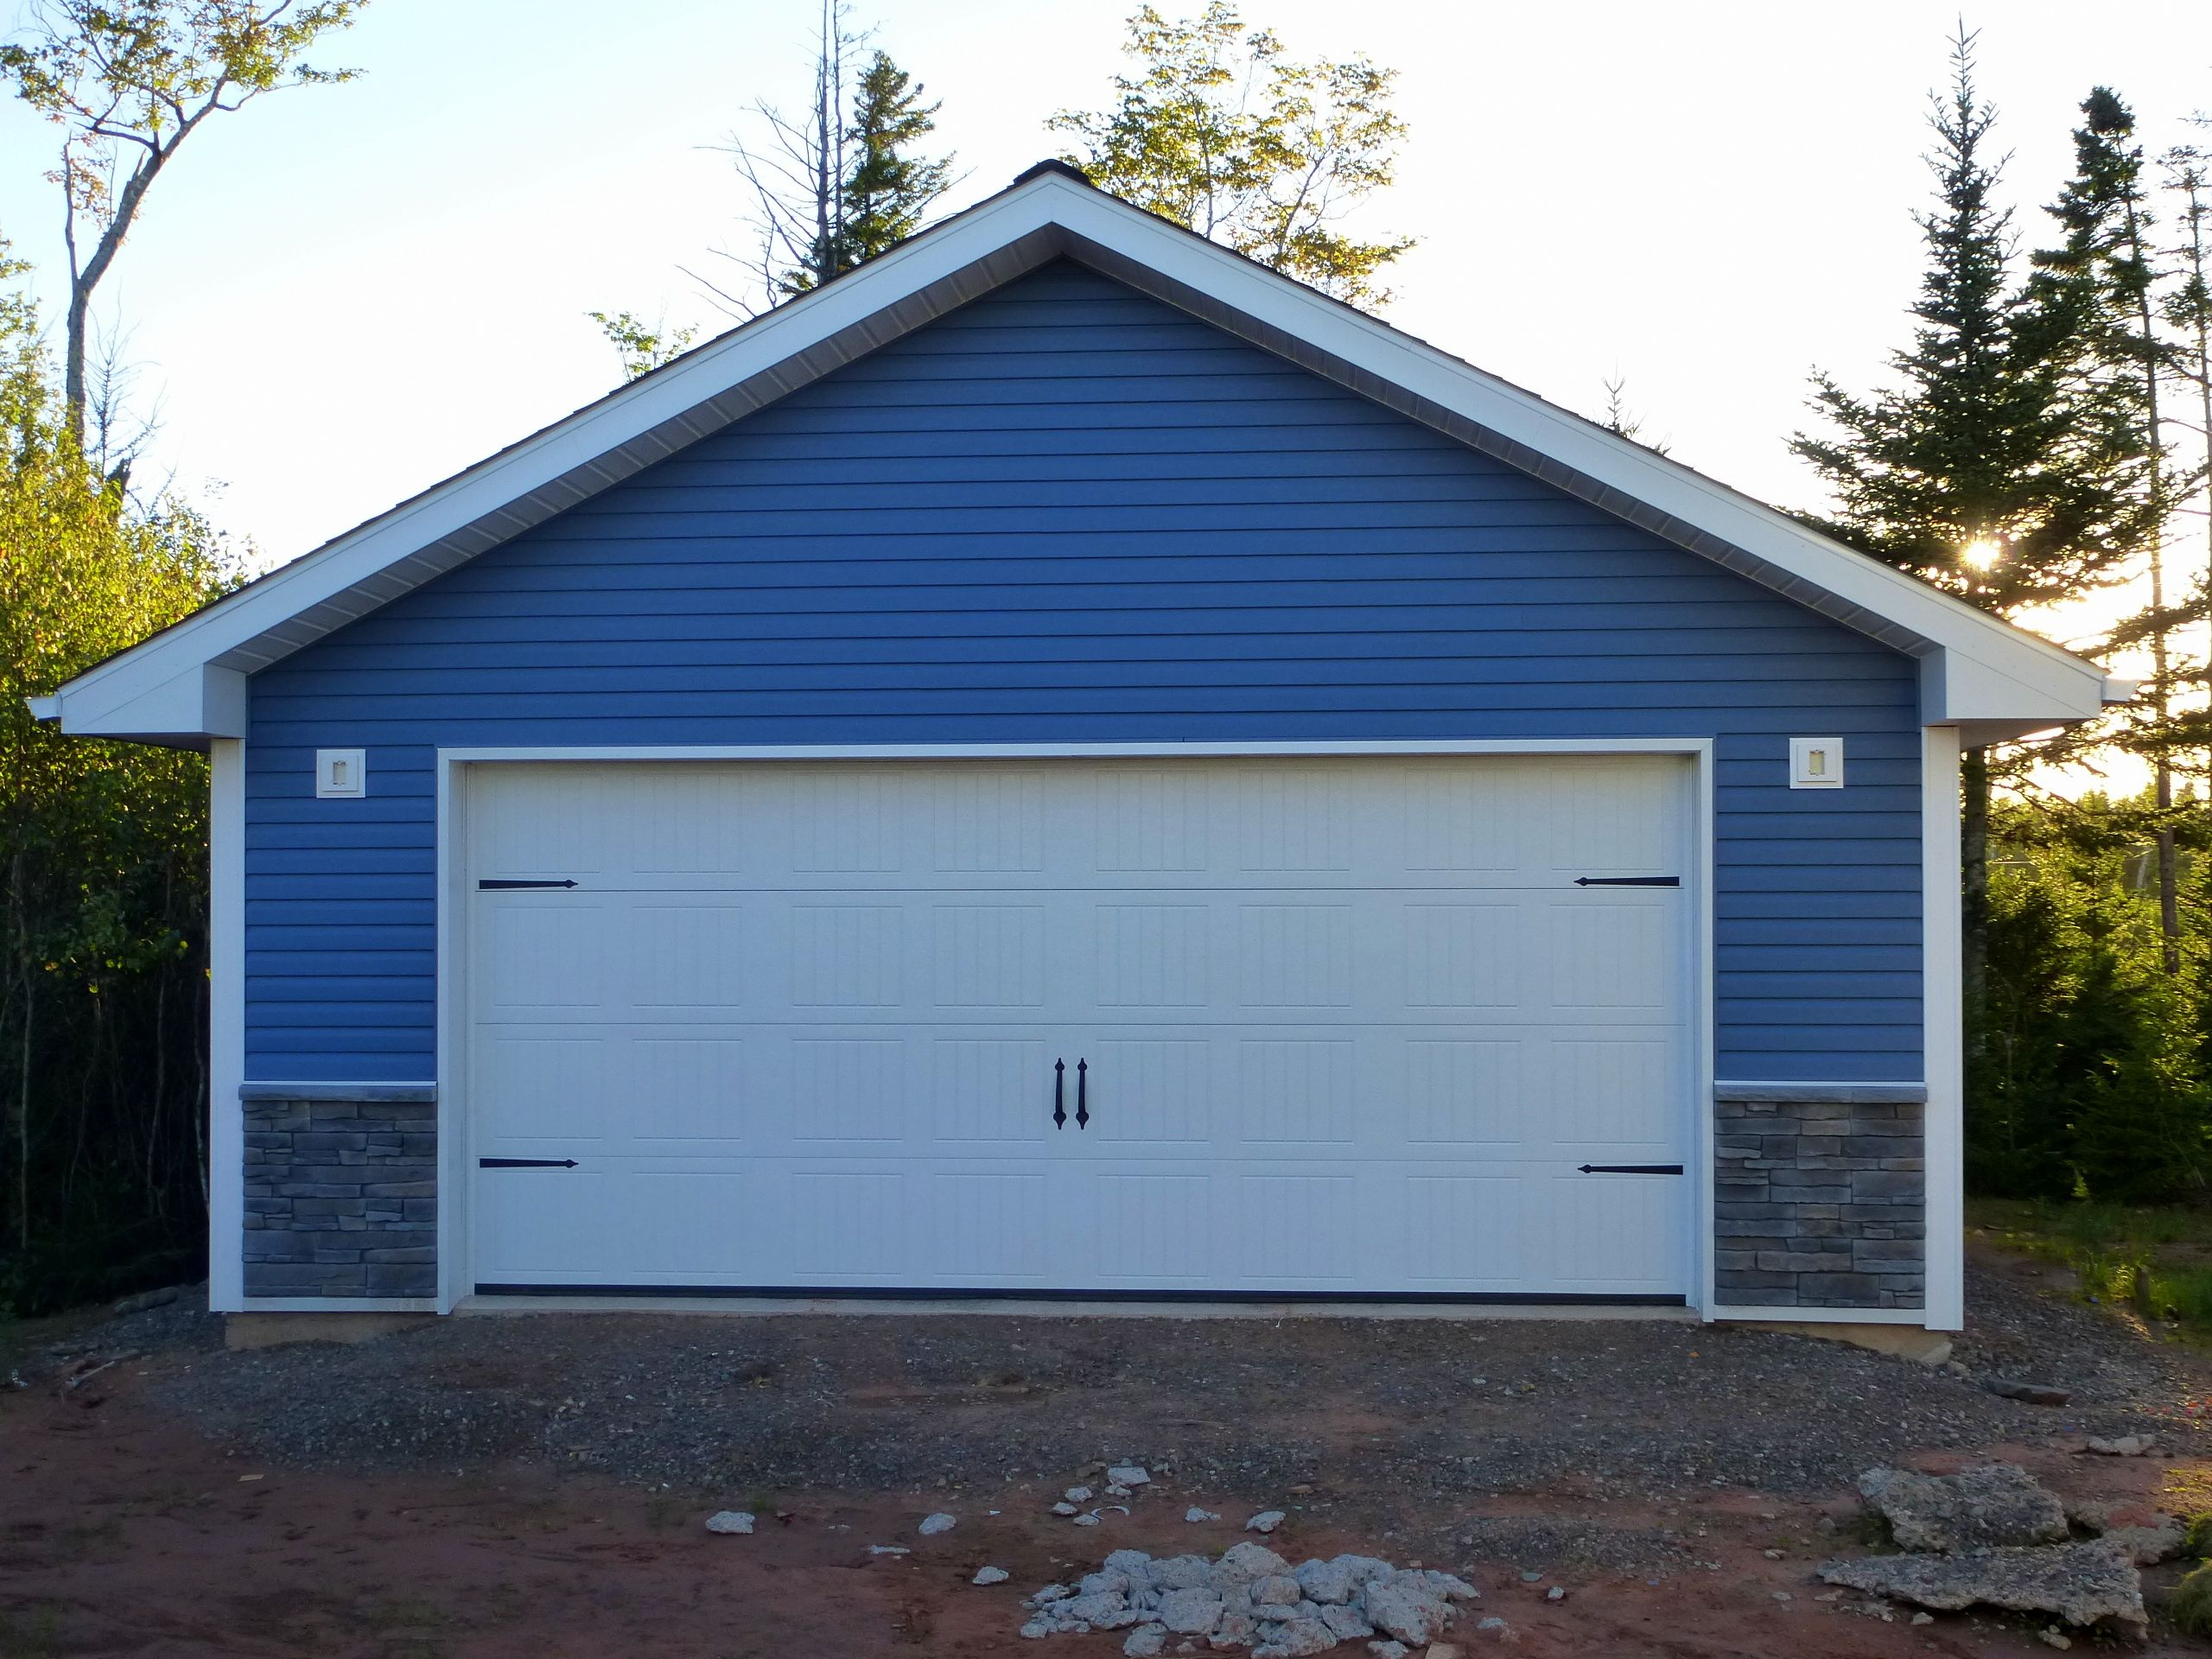 Garage doors sizes available - There Are Lots Of Options For Your Garage Come By Hubcraft Timber Mart We